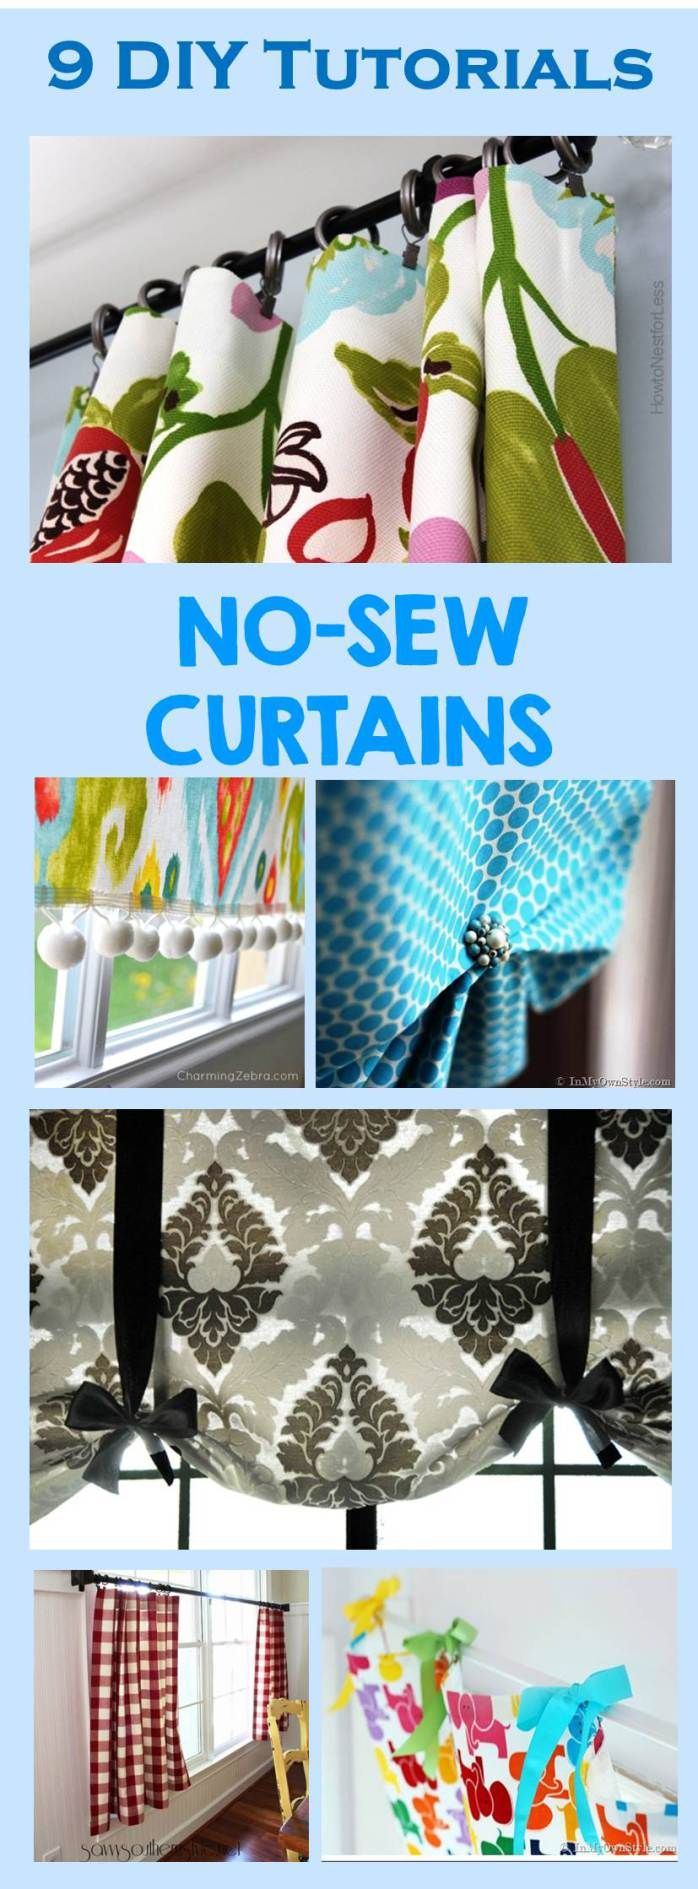 http://www.idecz.com/category/Curtains/ 9 diy tutorials no sew curtains cheer and cherry l